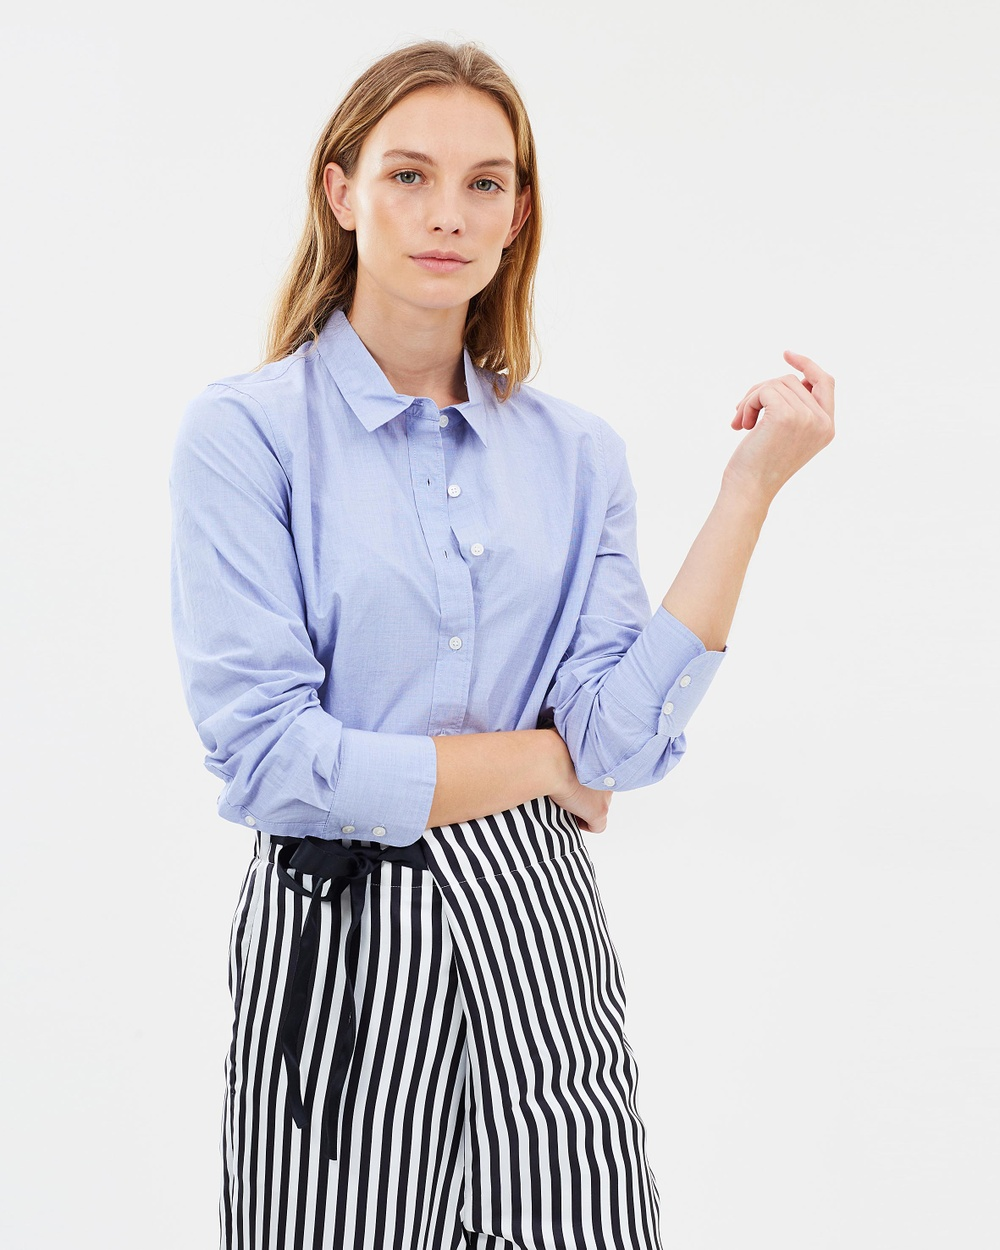 J.Crew New Perfect Shirt in End On End Cotton Tops French Blue New Perfect Shirt in End-On-End Cotton